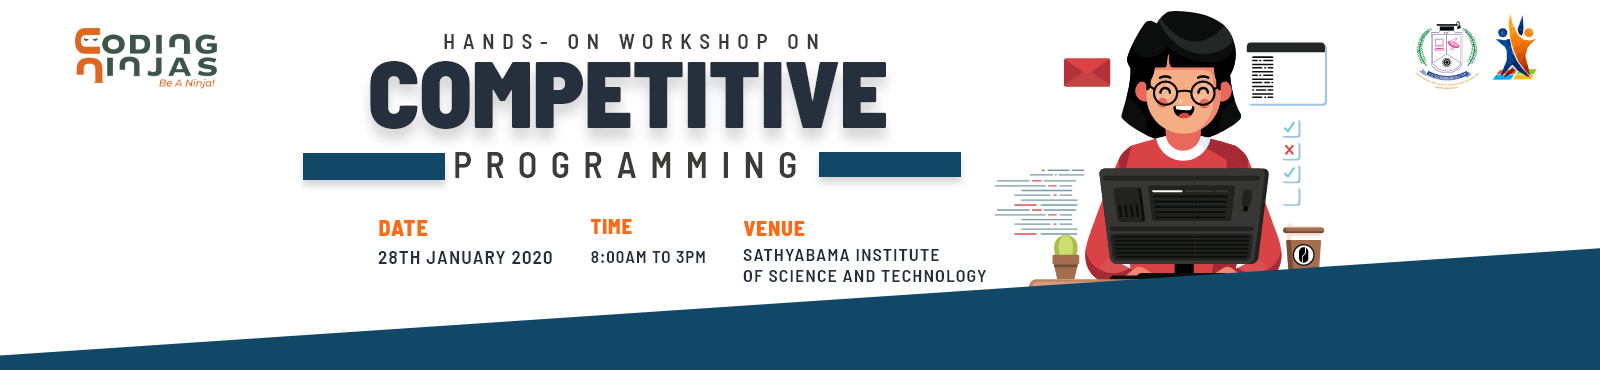 Workshop at Sathyabama institute of science and technology